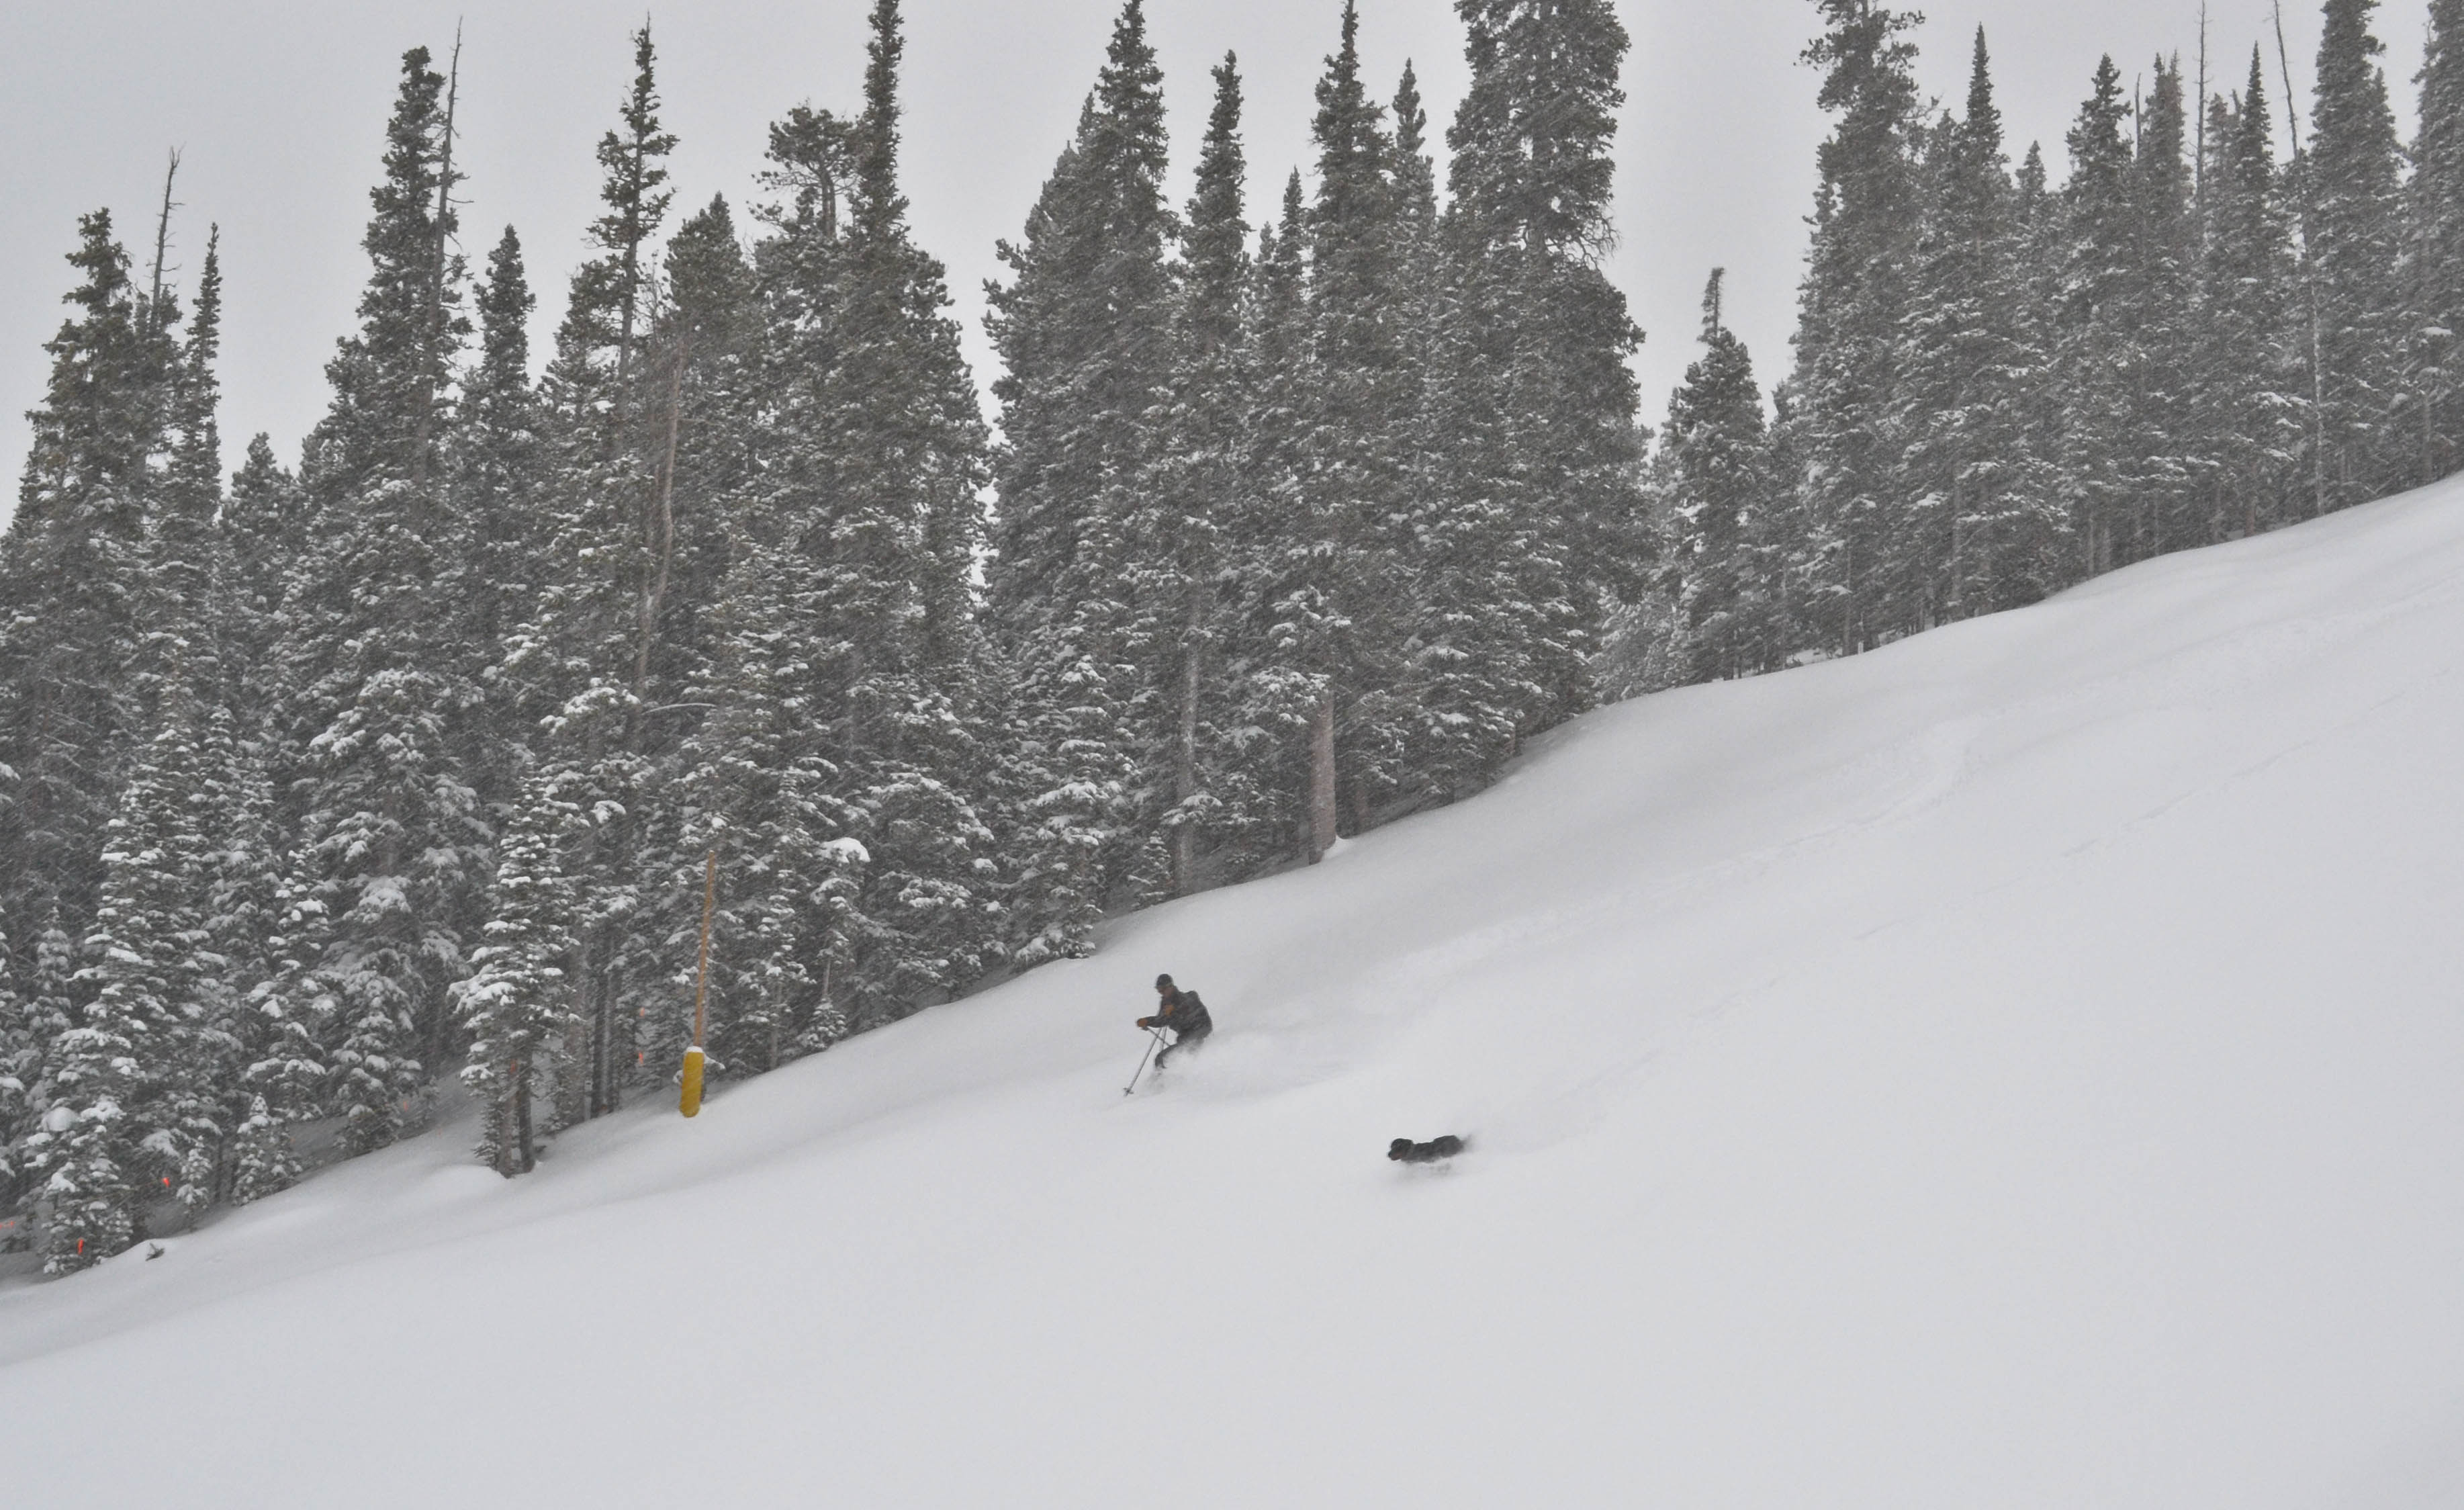 Anonymous skier